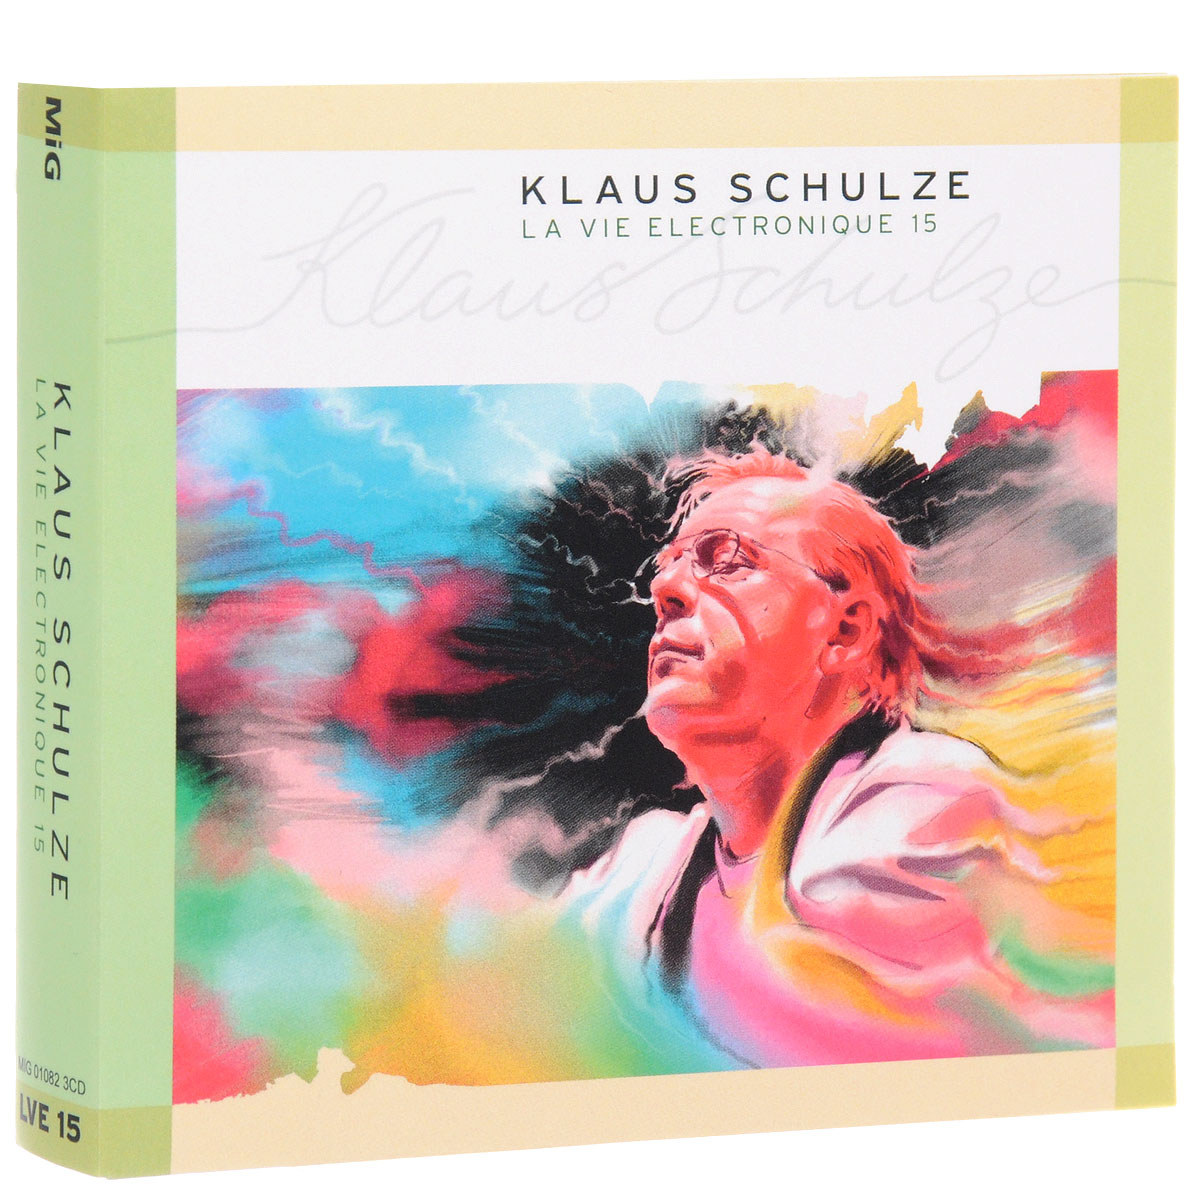 Клаус Шульце Klaus Schulze. La Vie Electronique 15 (3 CD) клаус шульце klaus schulze la vie electronique 11 3 cd